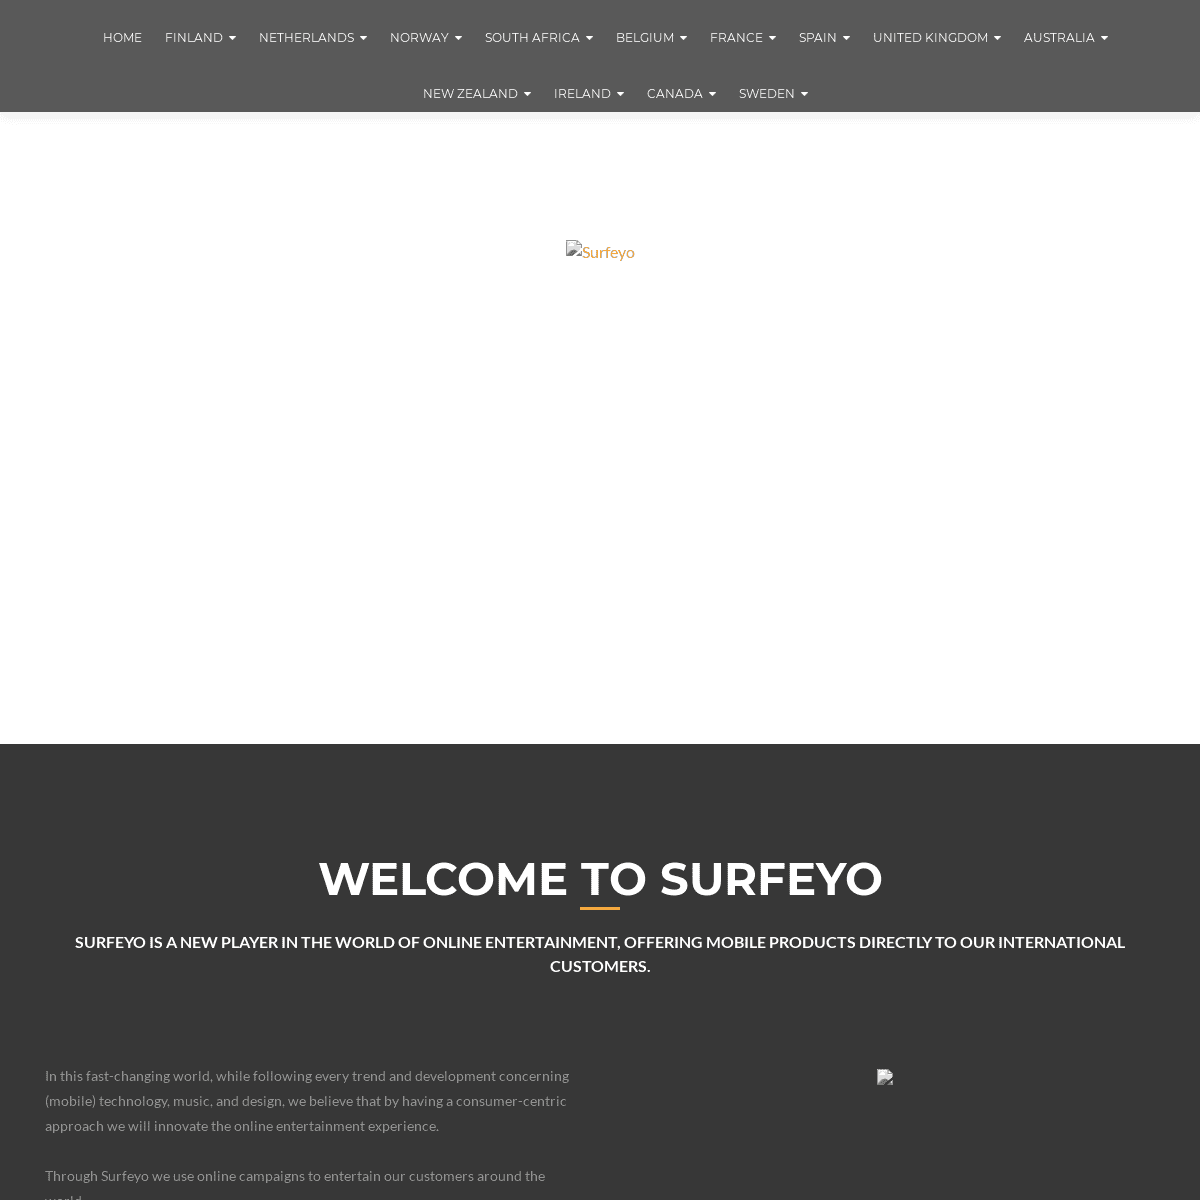 Surfeyo – Welcome to Surfeyo